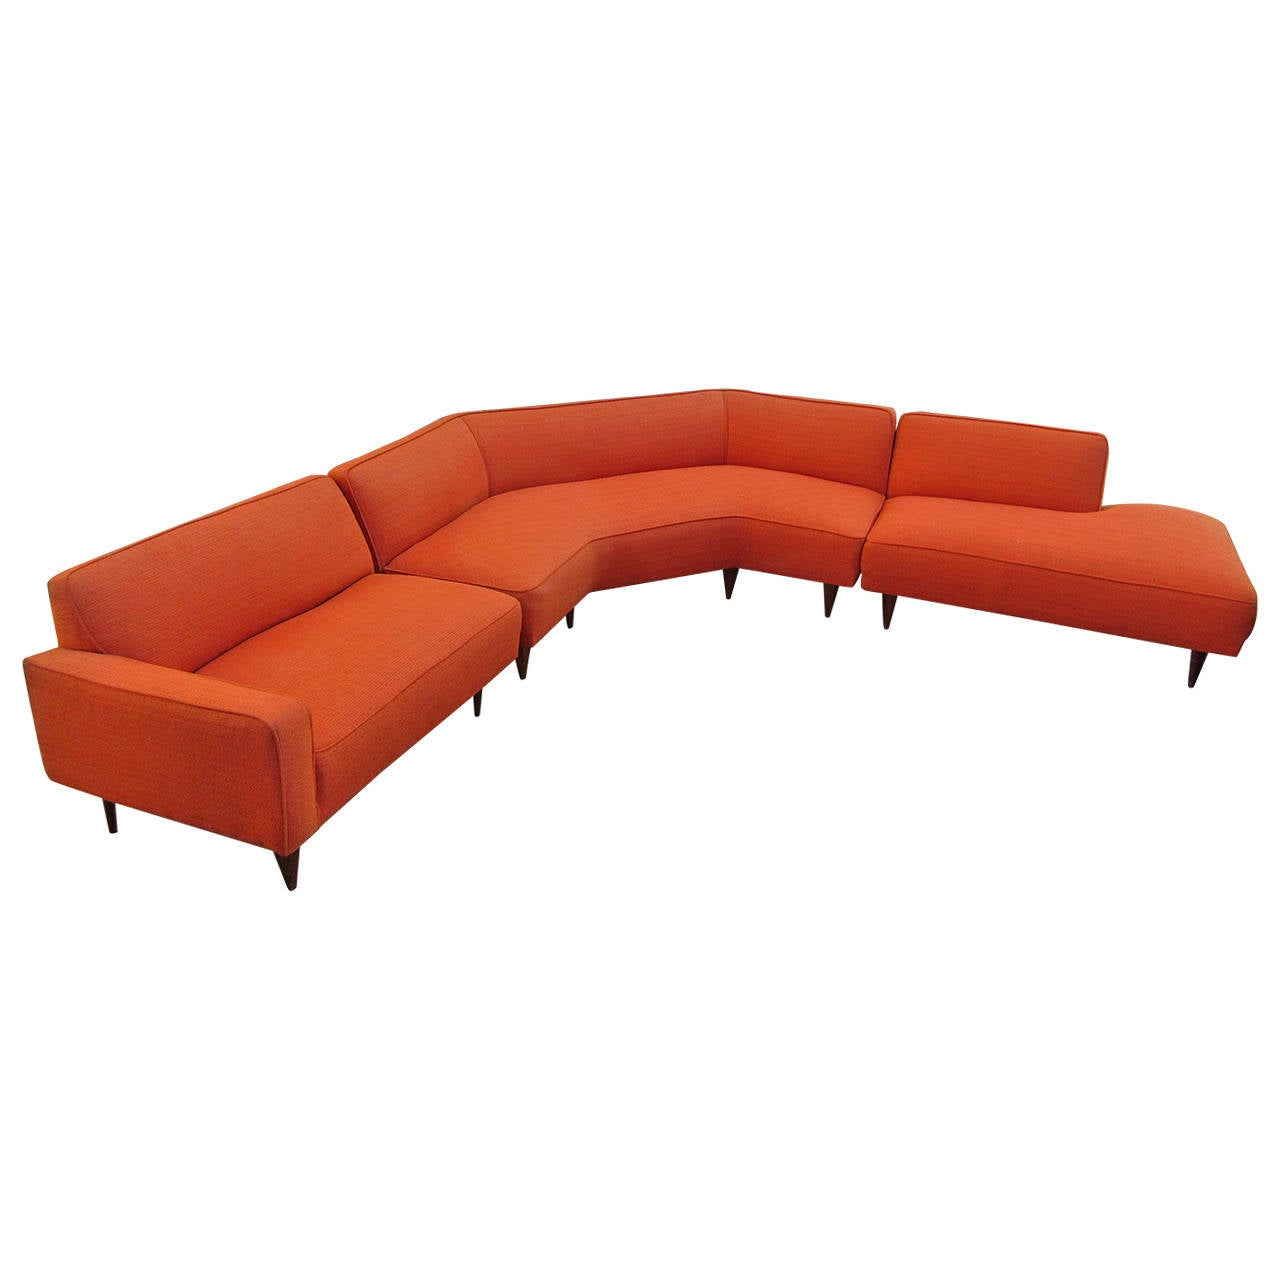 1950s three piece sectional sofa at 1stdibs